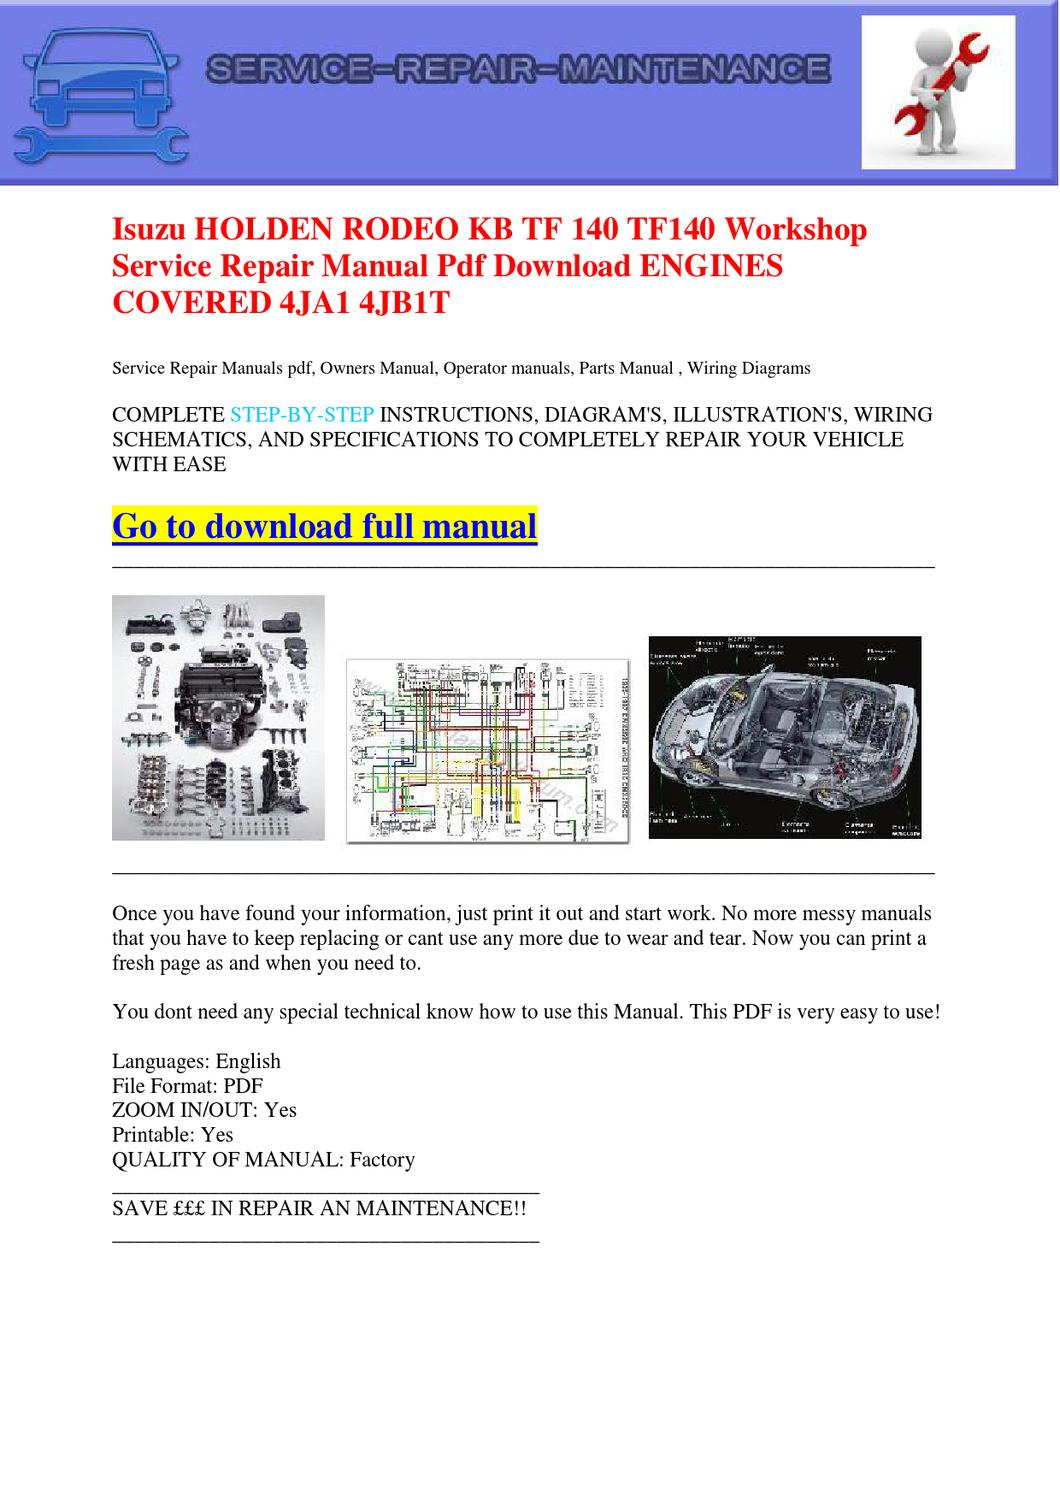 Isuzu HOLDEN RODEO KB TF 140 TF140 Workshop Service Repair Manual Pdf  Download ENGINES COVERED 4JA1 by Dernis Castan - issuu